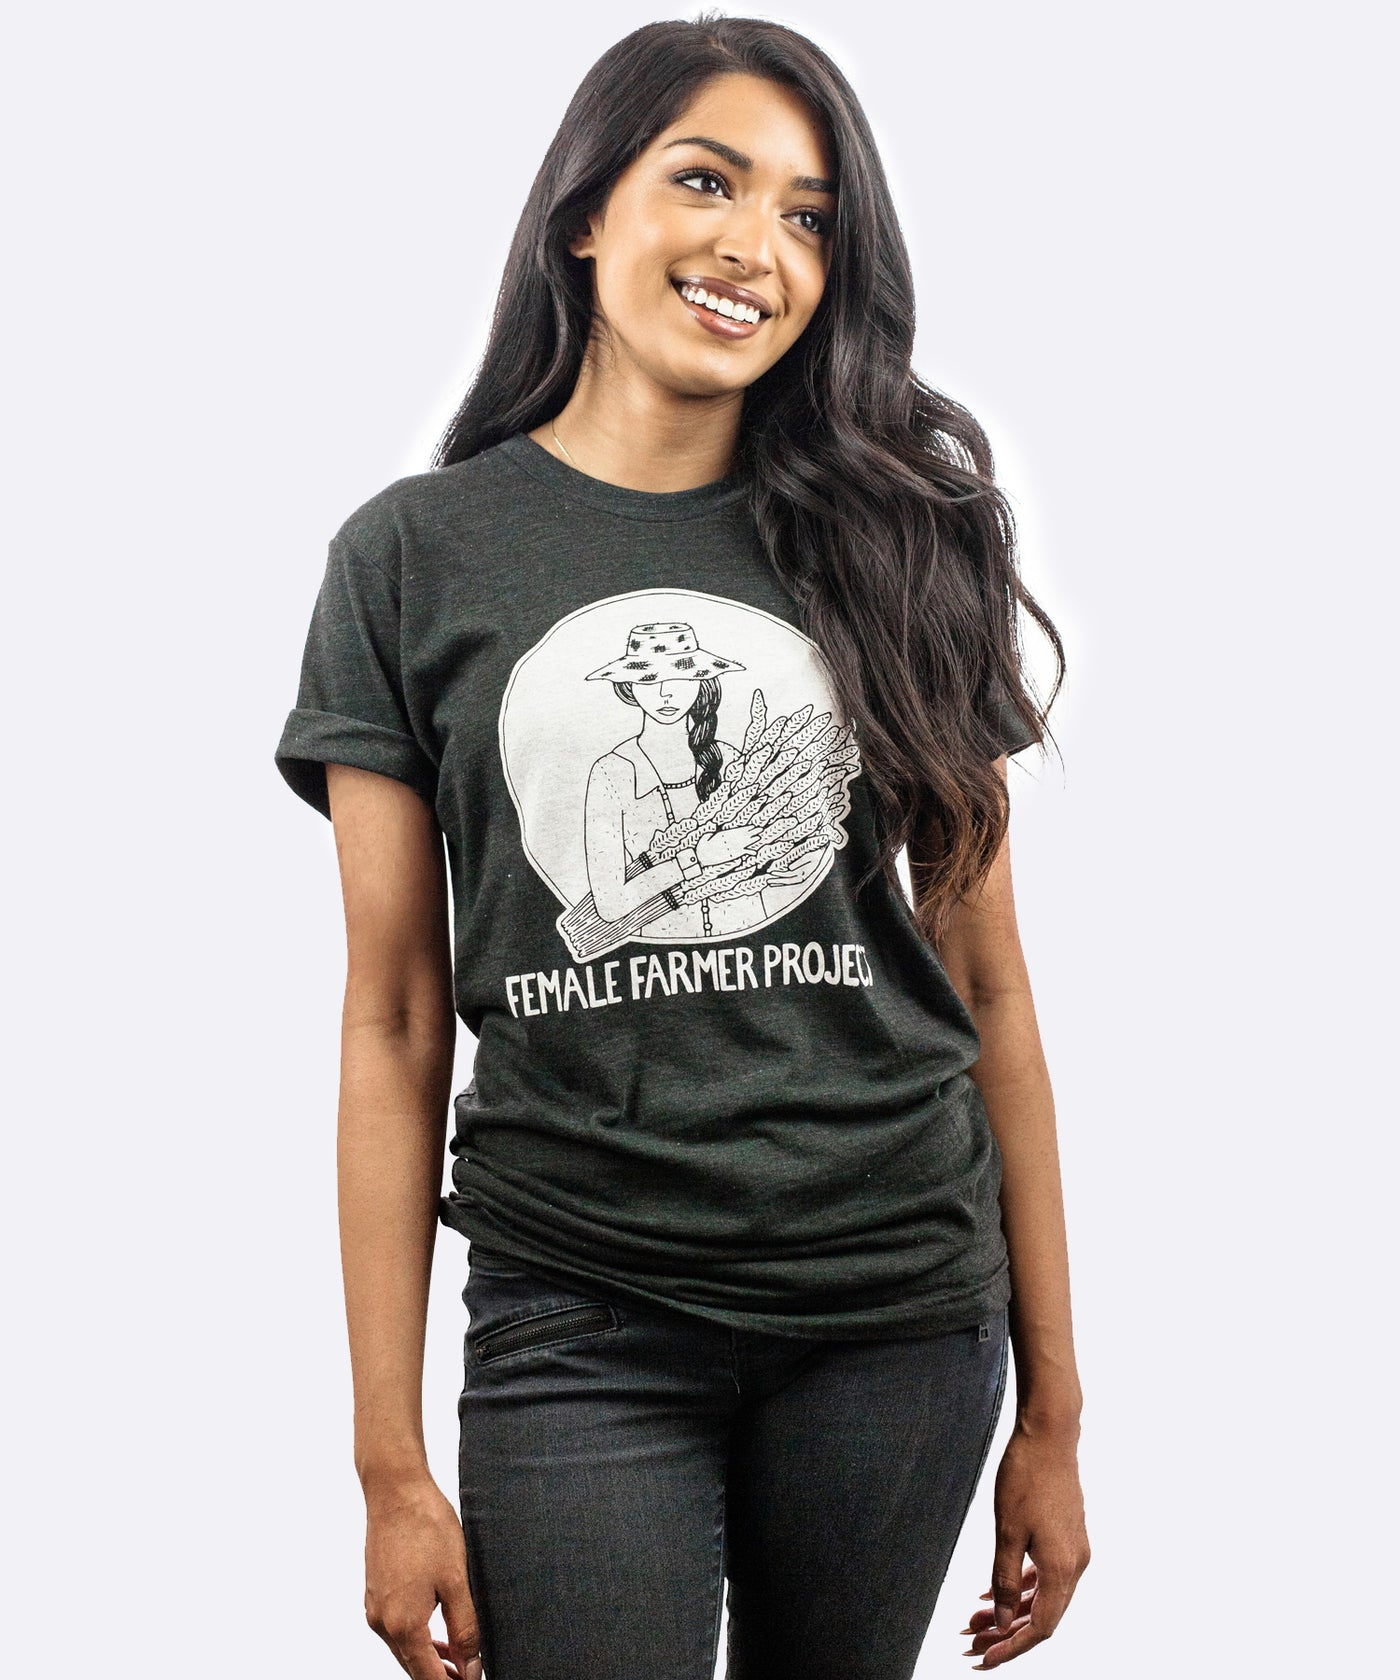 Female Farmer Project T-Shirt